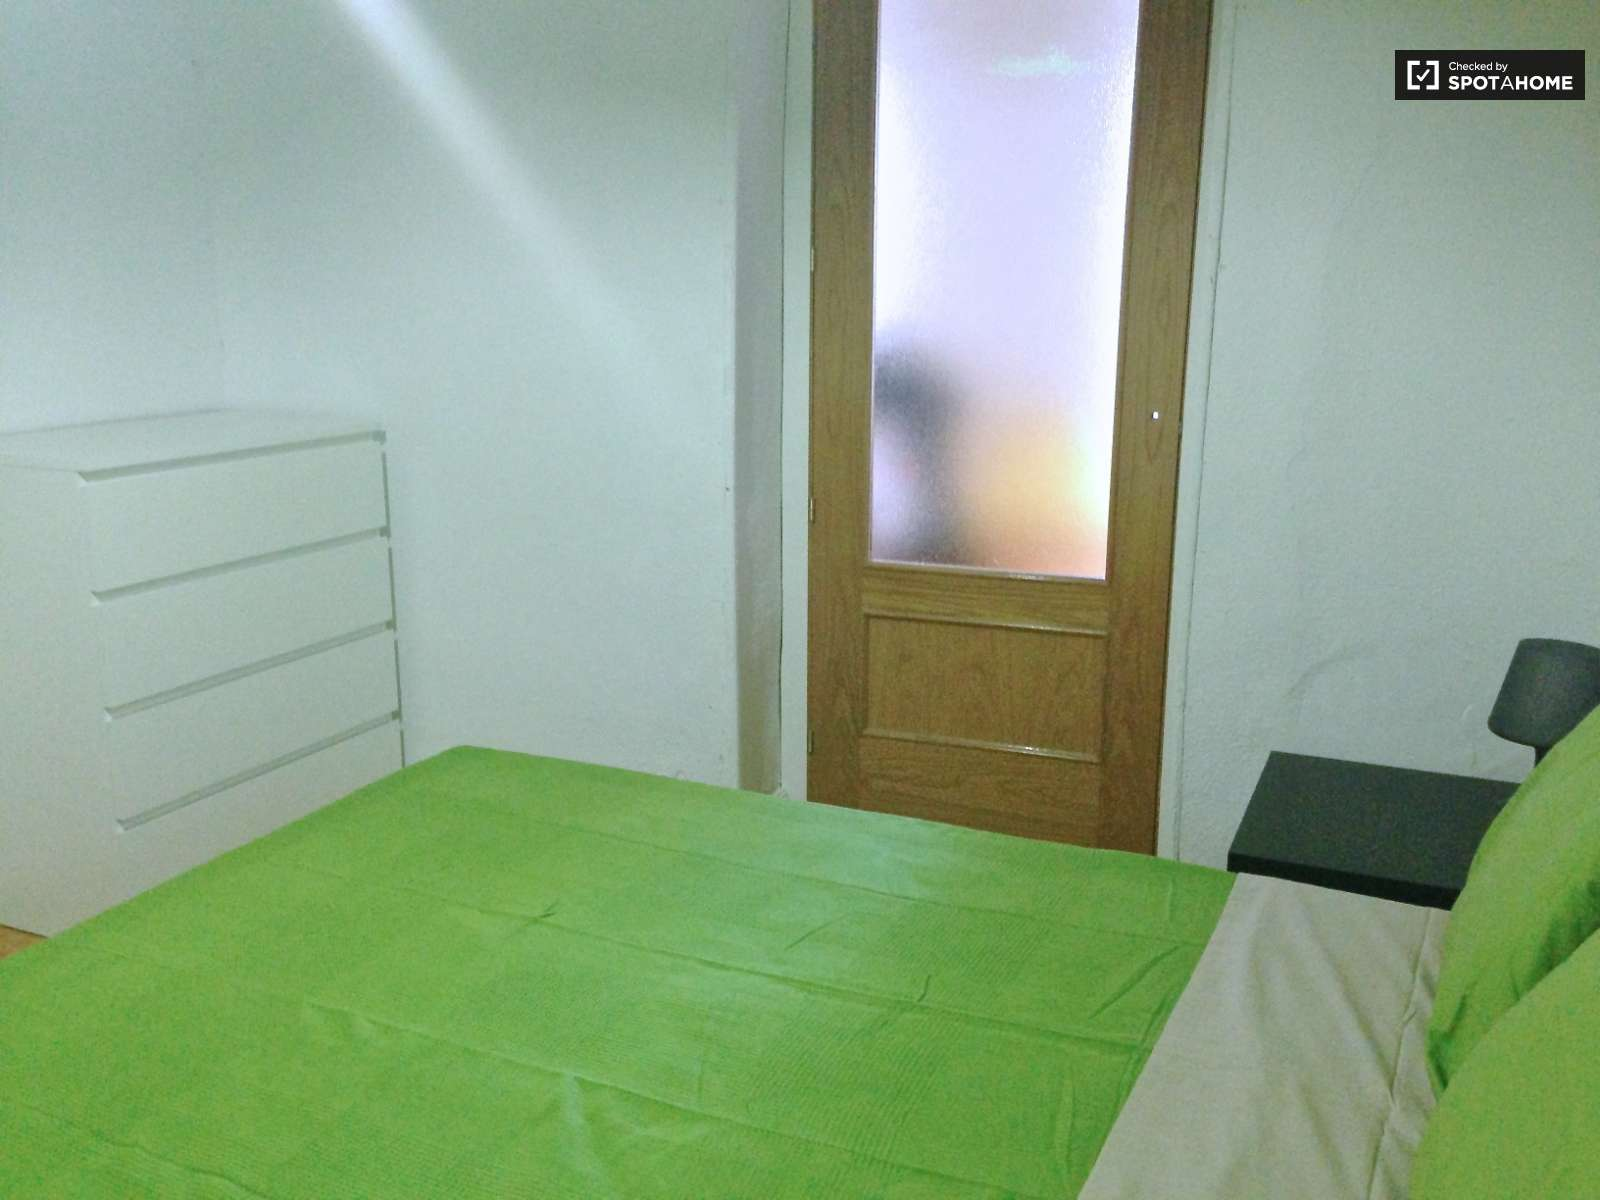 for room furnished men on indore bed rooms paying ajviaq images guest fully pictures college nakshatra opp rent engineering accommodation road bzdet prestige photos